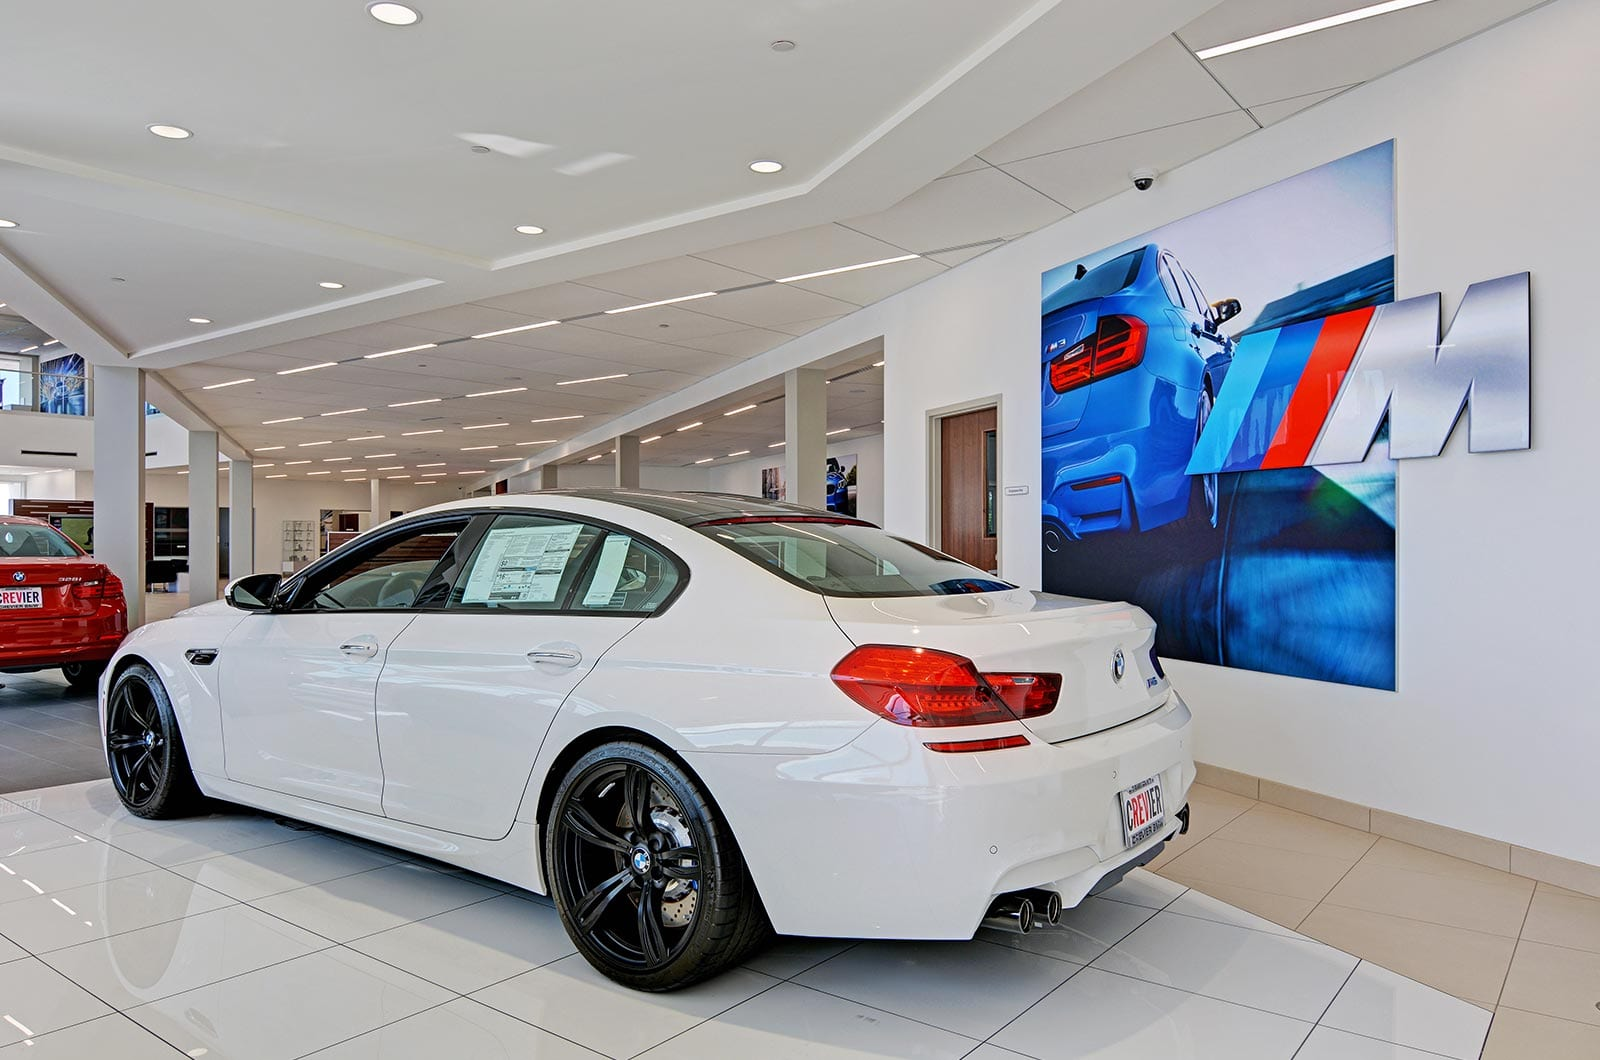 BMW-M-Series-Auto-Dealership-Interior-Showroom-Architectural-Photography-Virtual-Tour-Aerial-Photography-Services